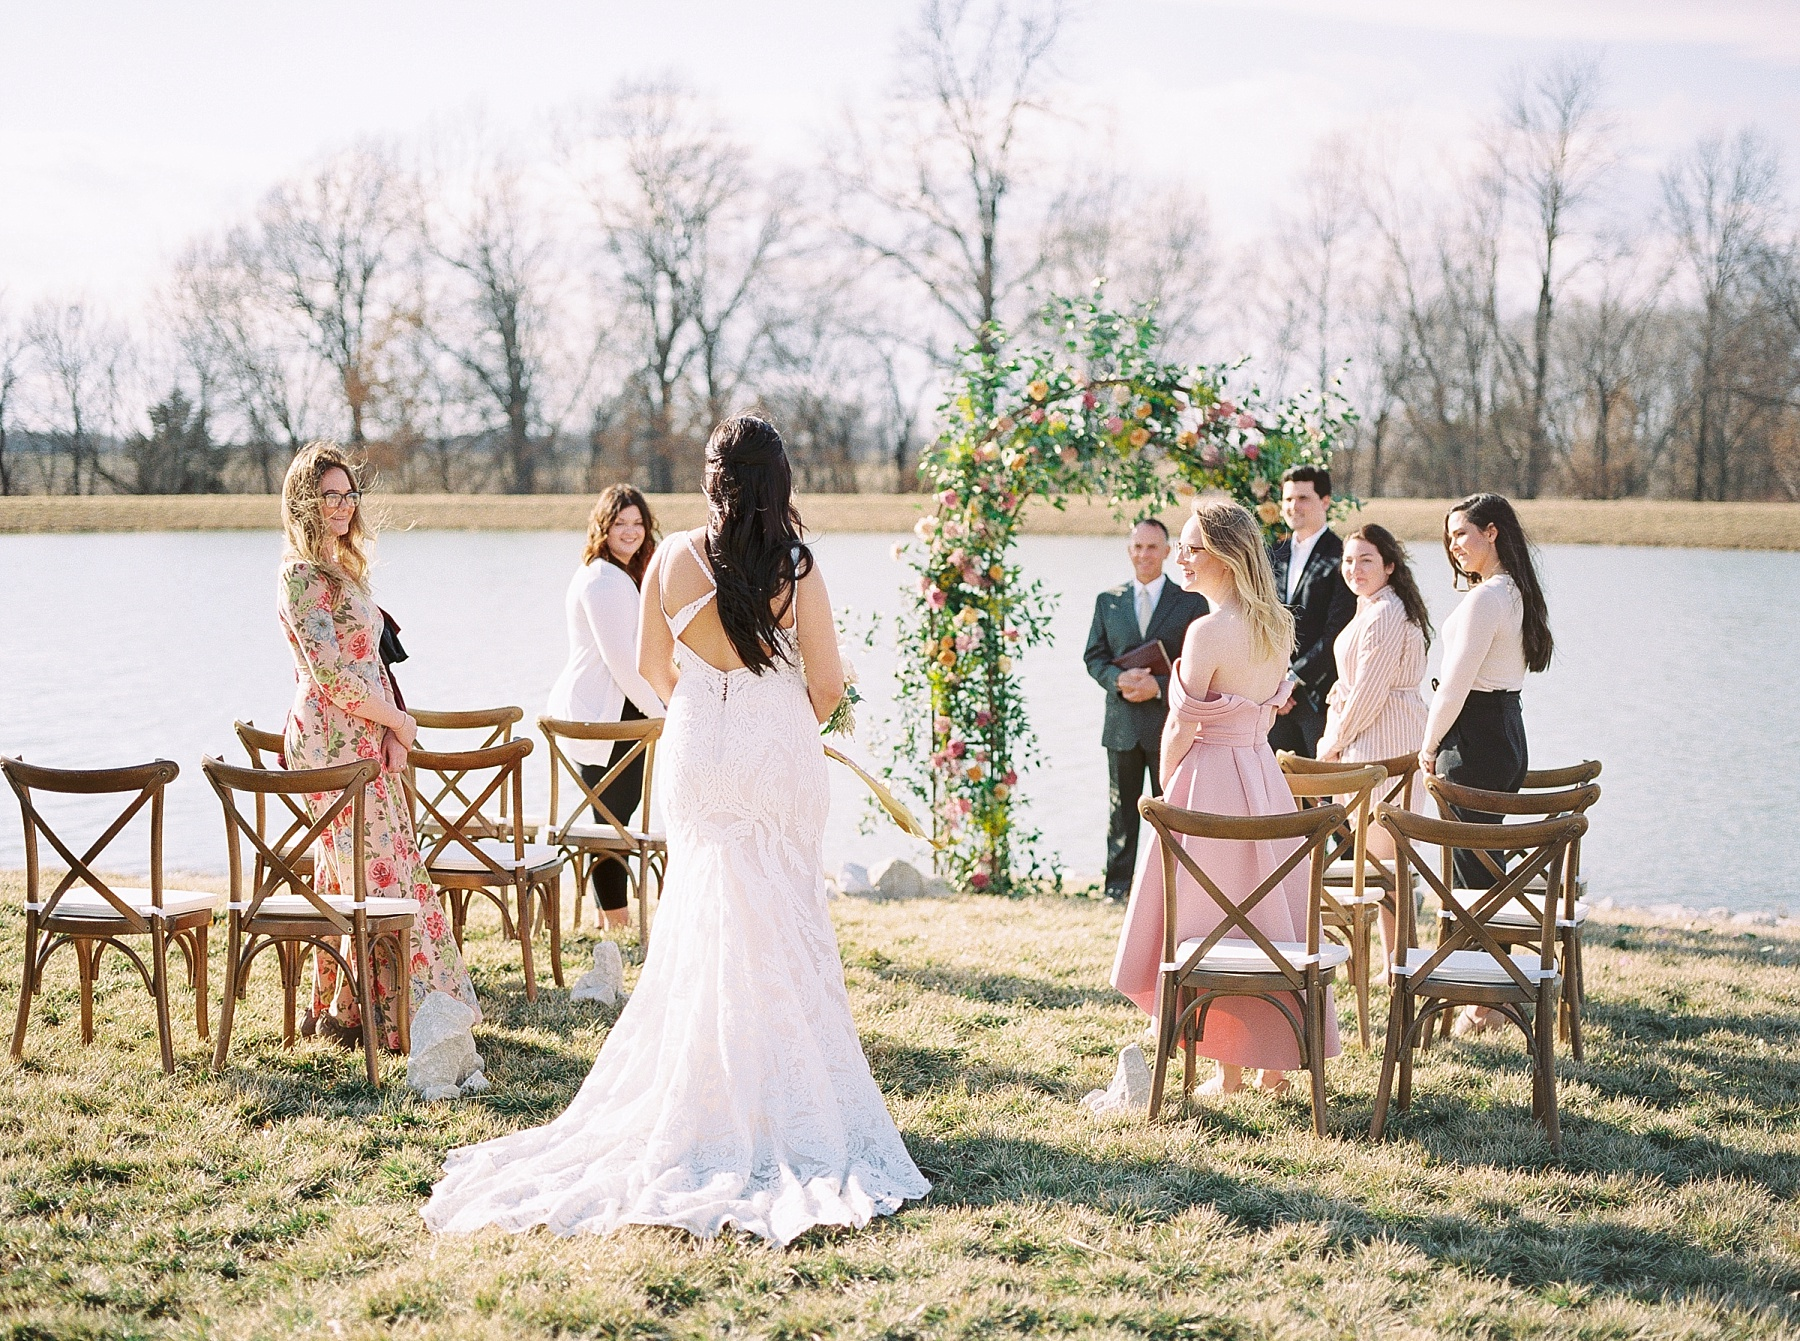 Lakeside Sunset Wedding with Magnificent Abundance of Blooms at Emerson Fields by Kelsi Kliethermes Photography Best Missouri and Maui Wedding Photographer_0008.jpg